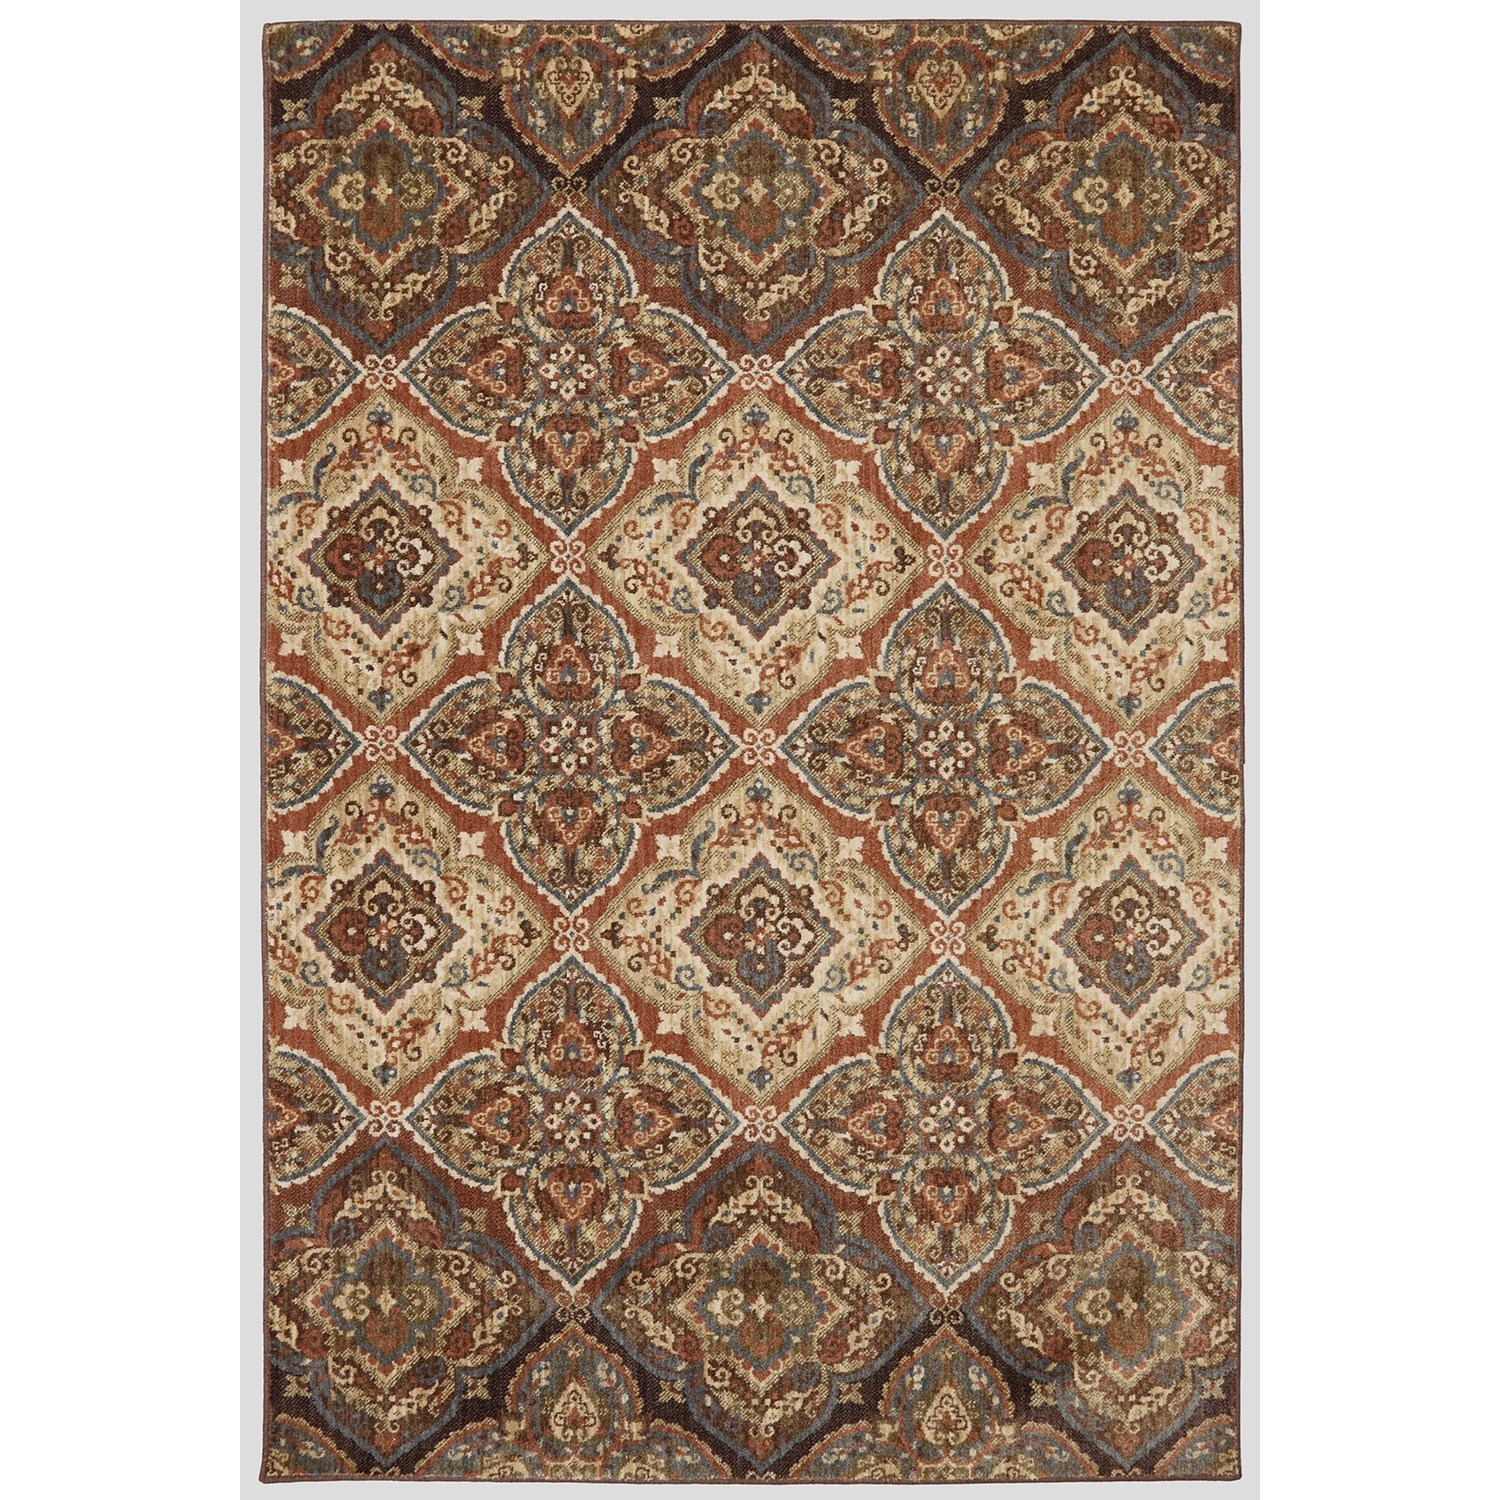 Dryden 8'x11' Chapel Latte Area Rug by American Rug Craftsmen at Alison Craig Home Furnishings